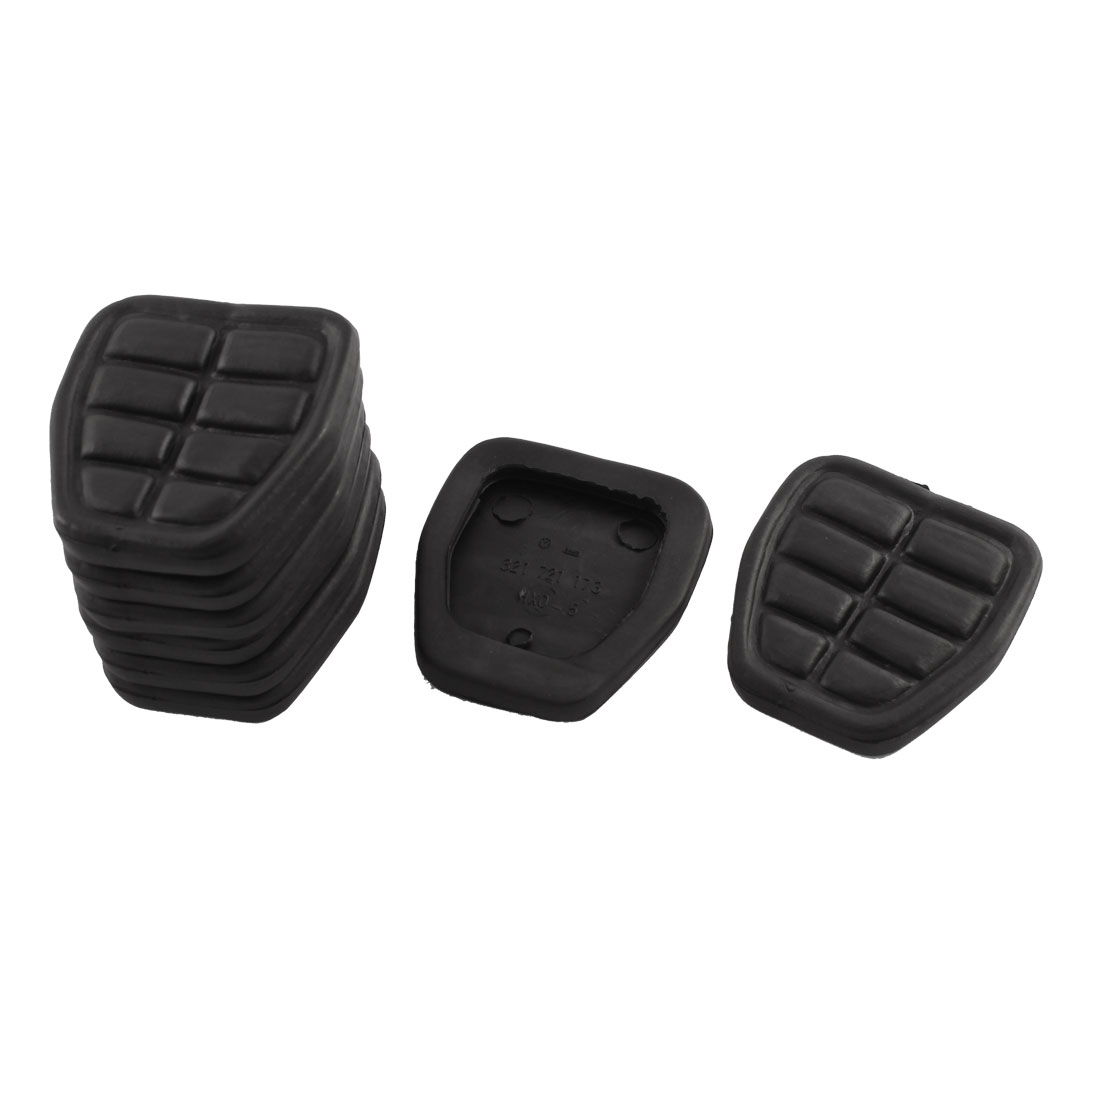 Clutch Brake Pedal Pad Rubber Set 321721173 8 Pcs for Audi 80